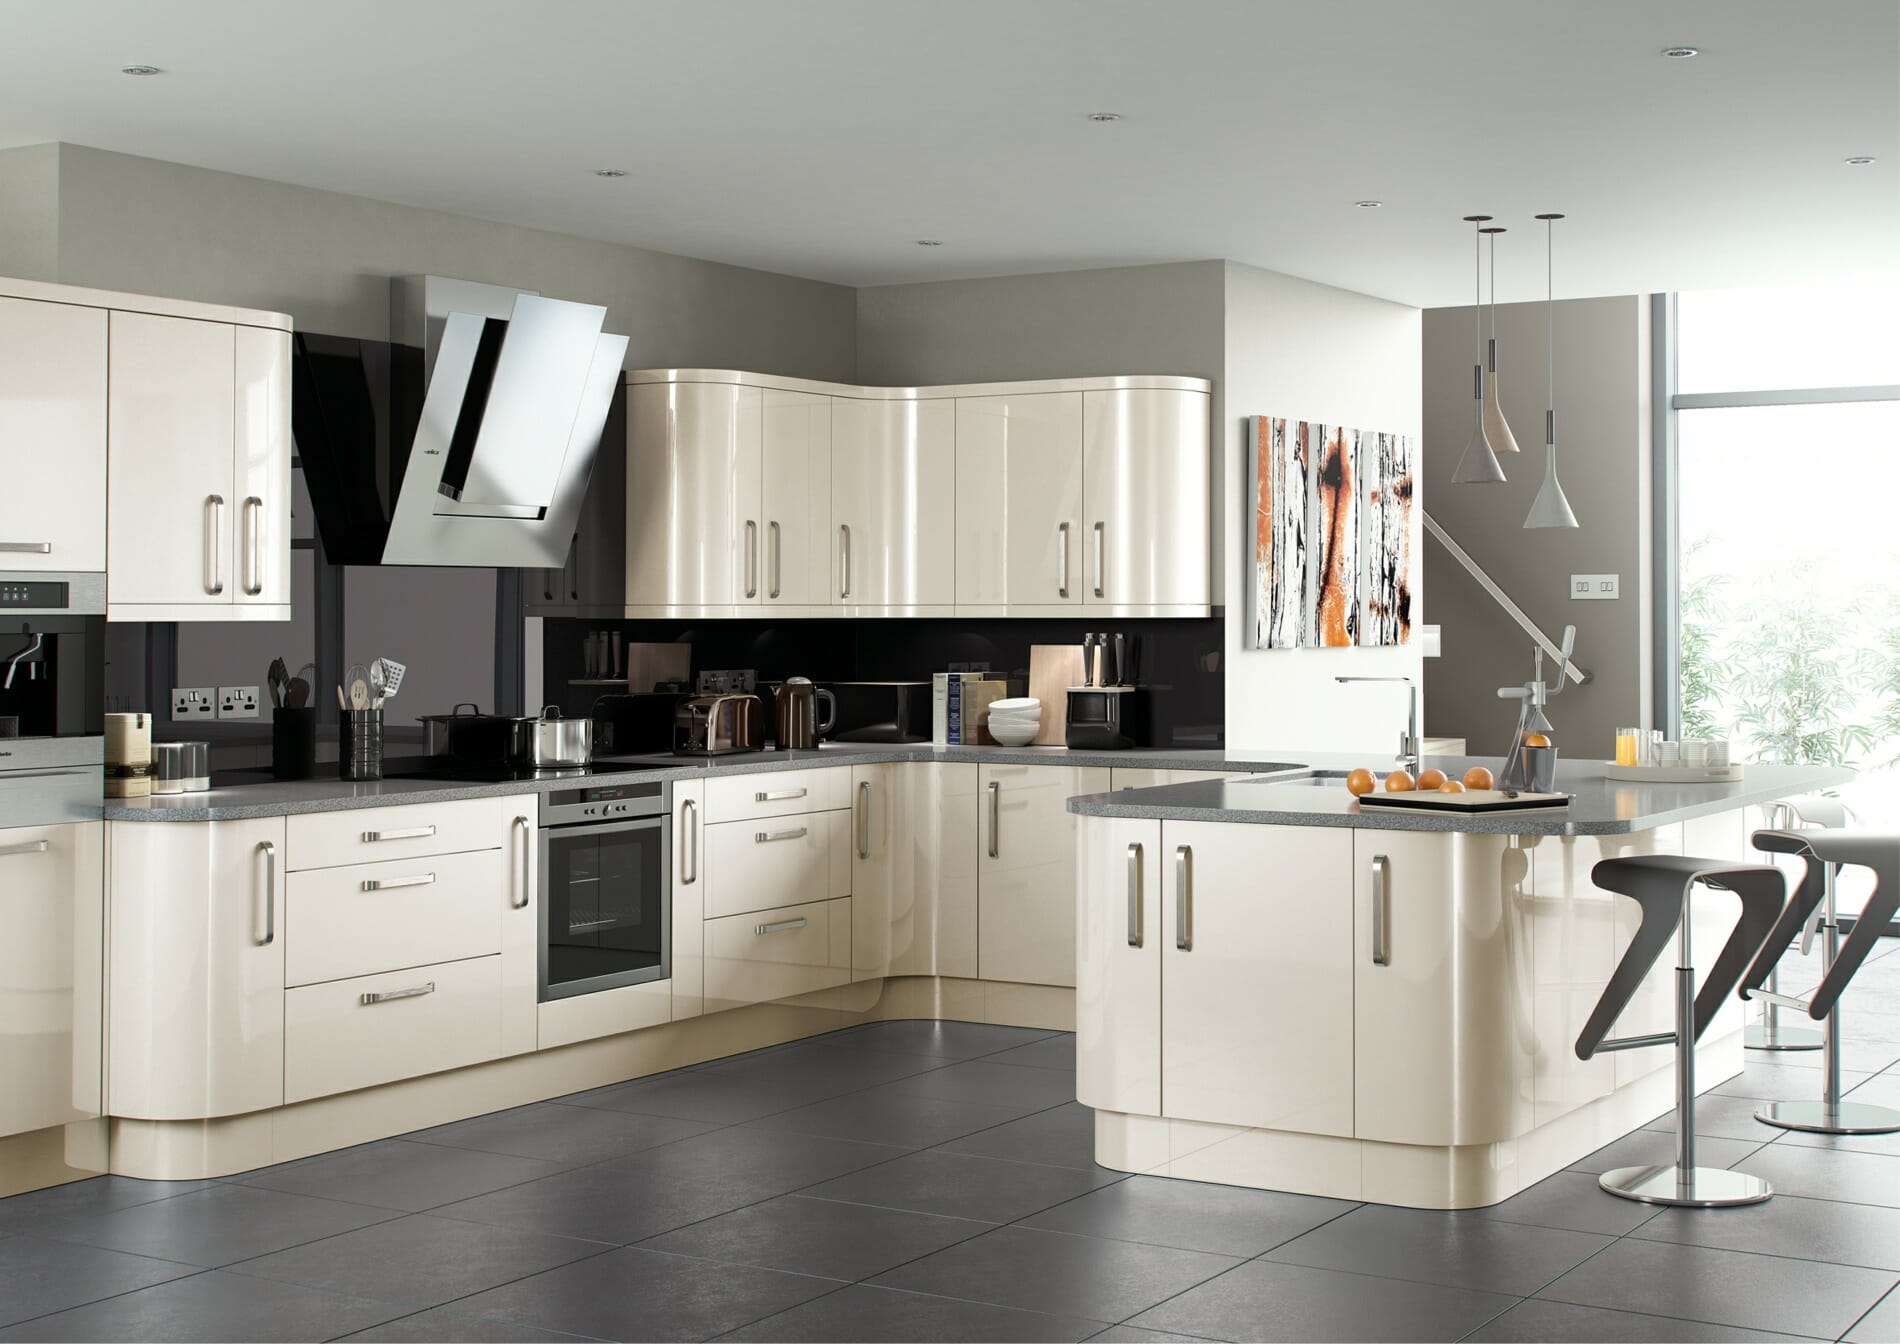 White High Gloss Kitchen Cabinets Rugby High Gloss White Fitted Kitchenjpg 710533 Pixels High Gloss